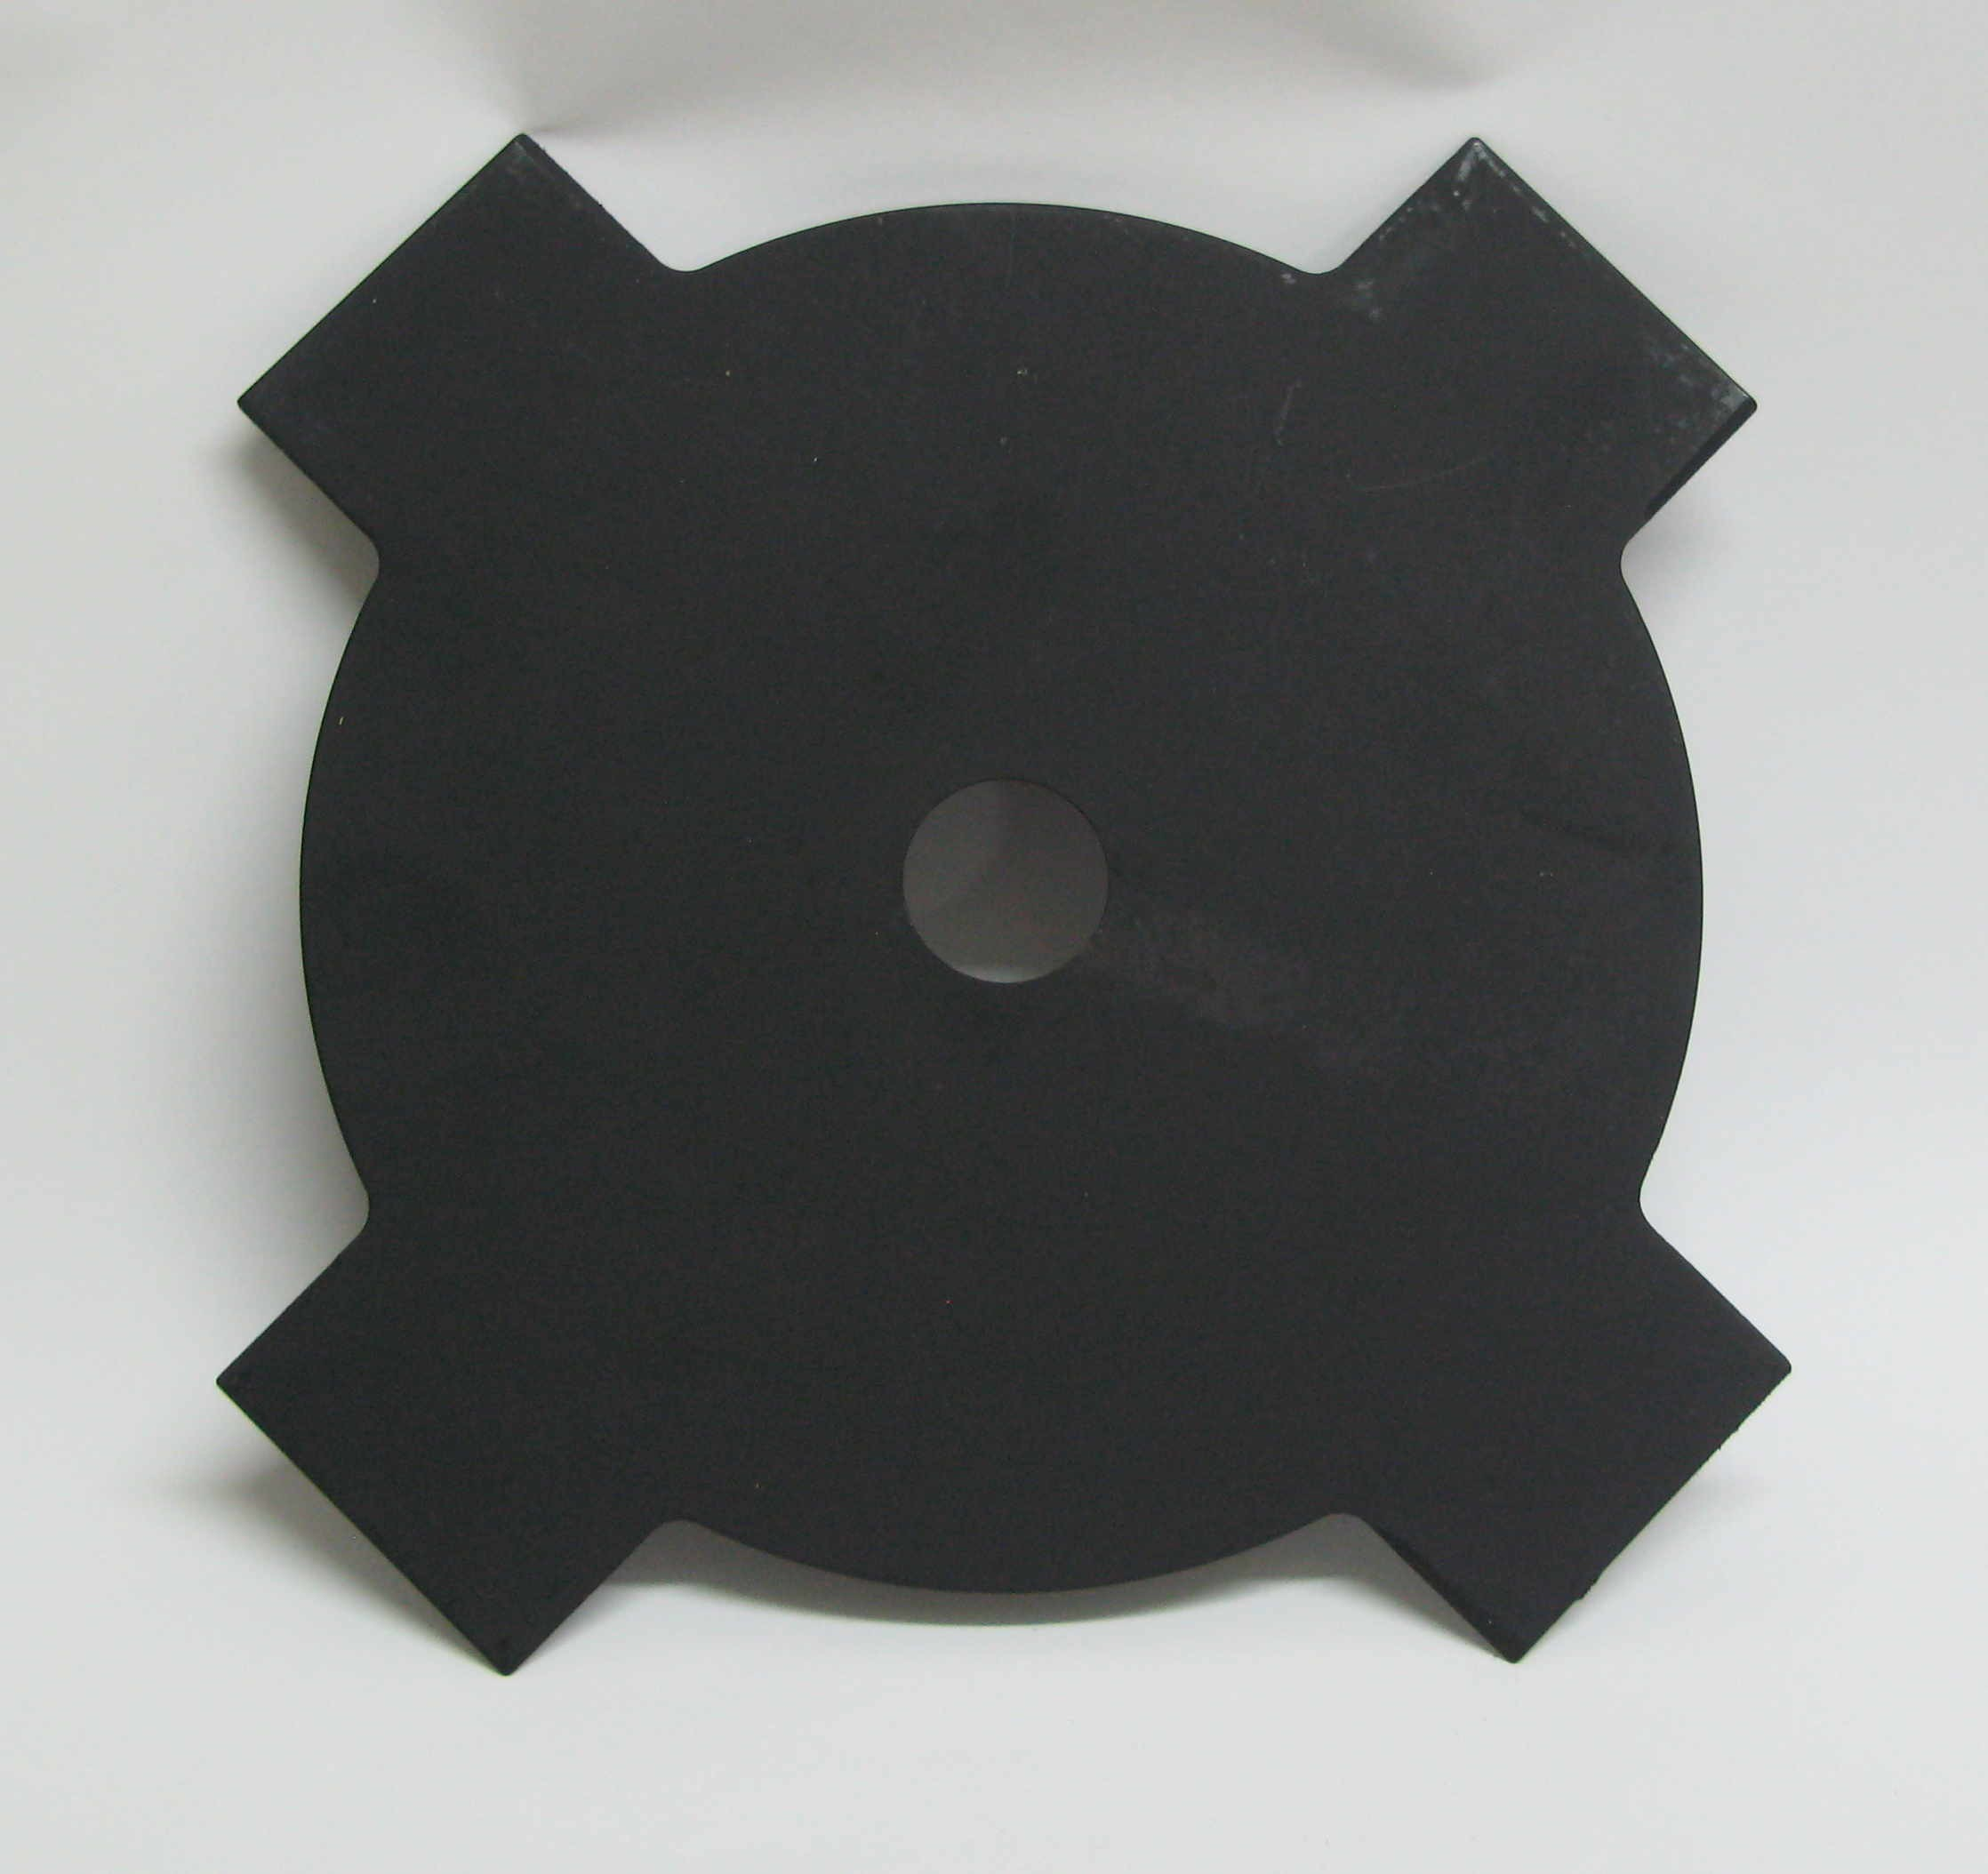 4-tooth 230mm metal brushcutter blade (25.4mm bore). Free guard.